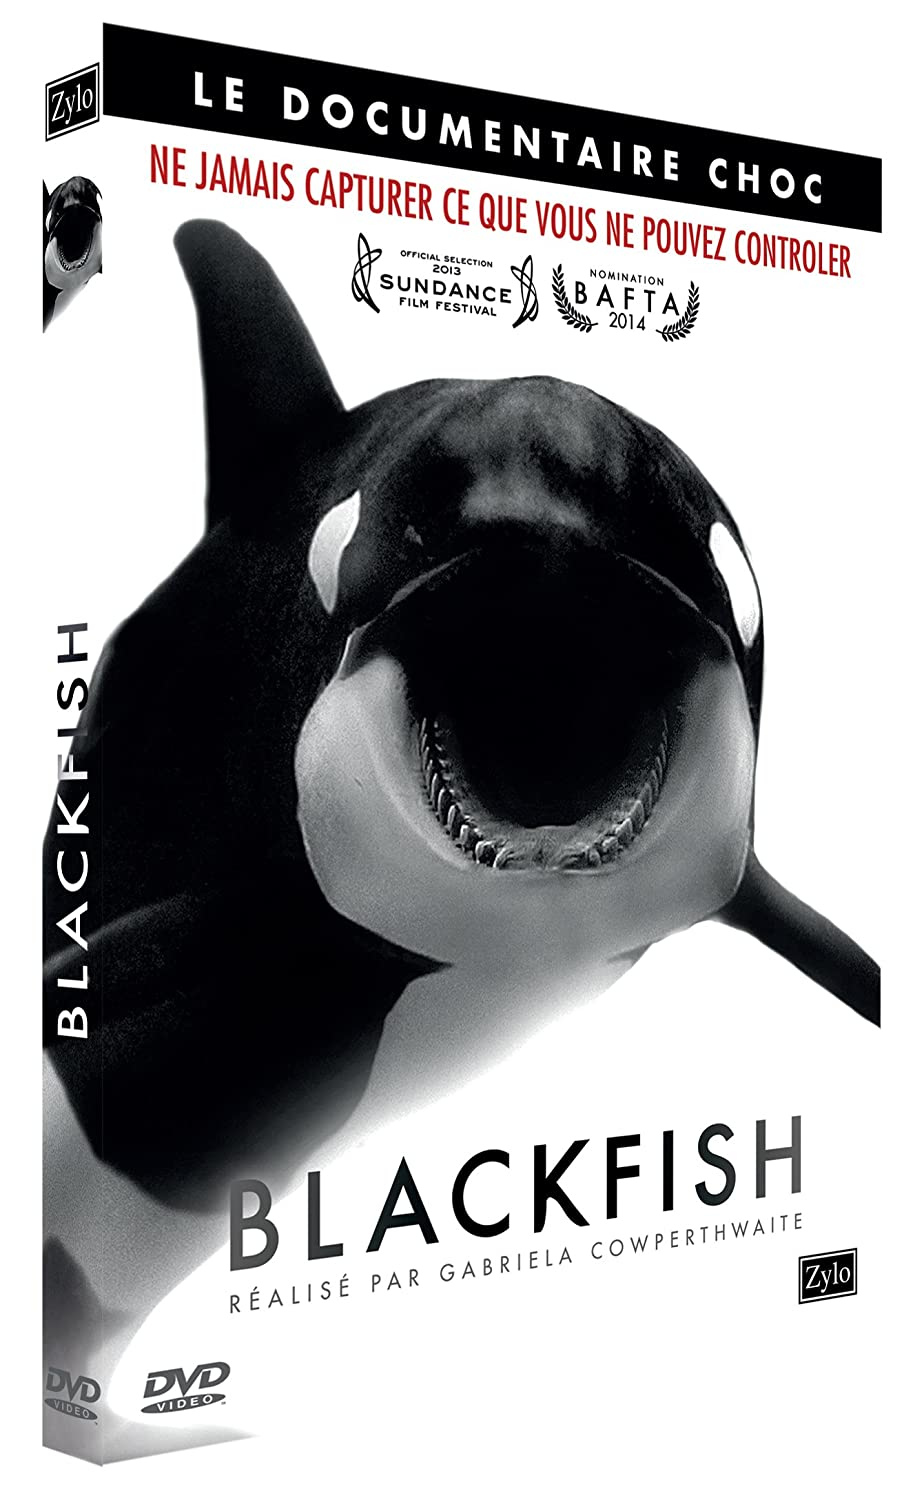 is the movie blackfish accurate